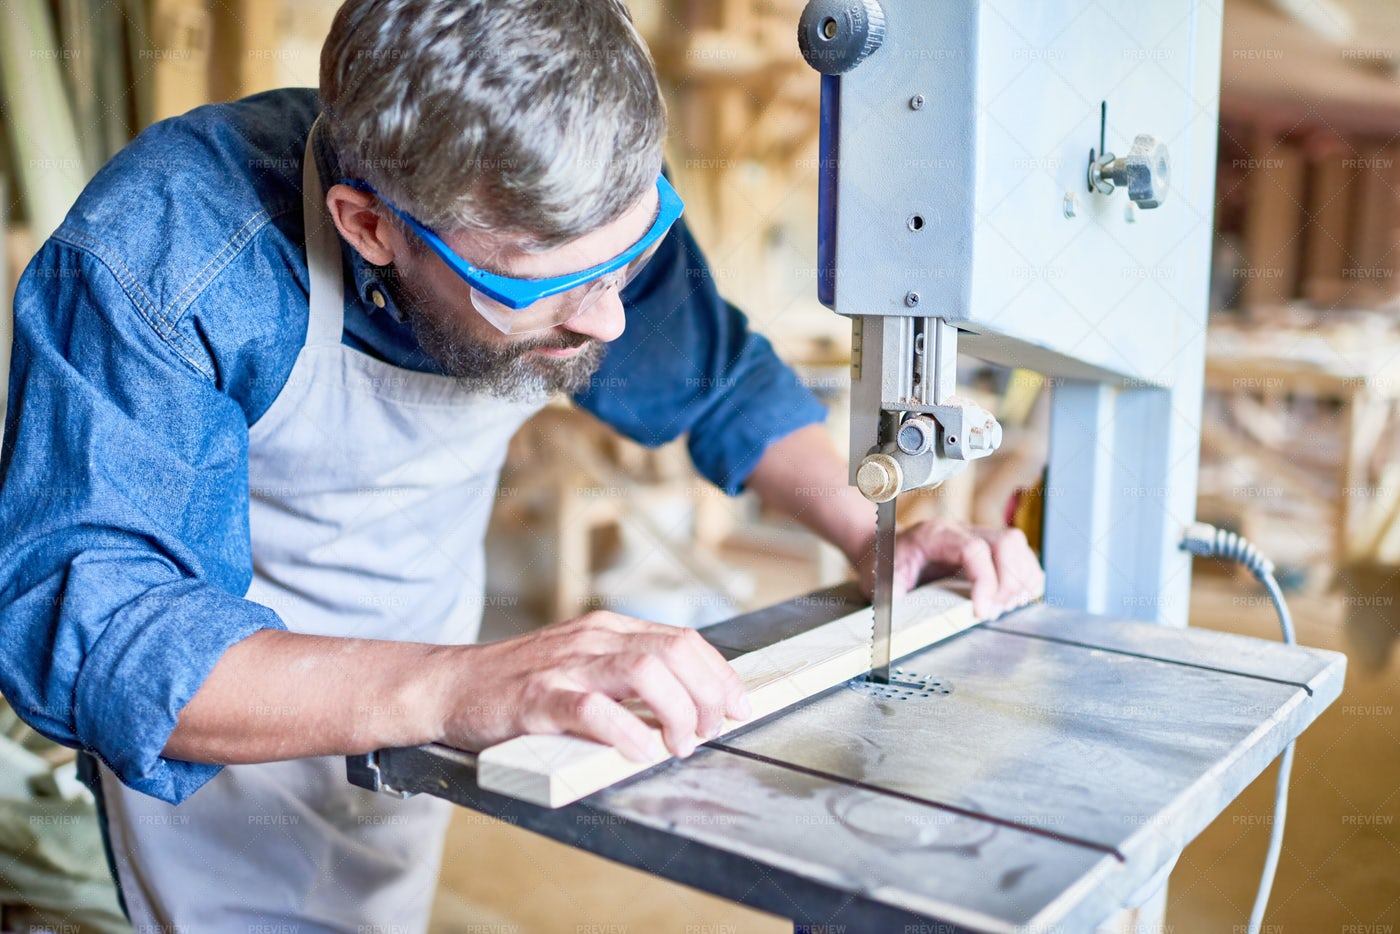 Carpenter Cutting Wood In Joinery: Stock Photos